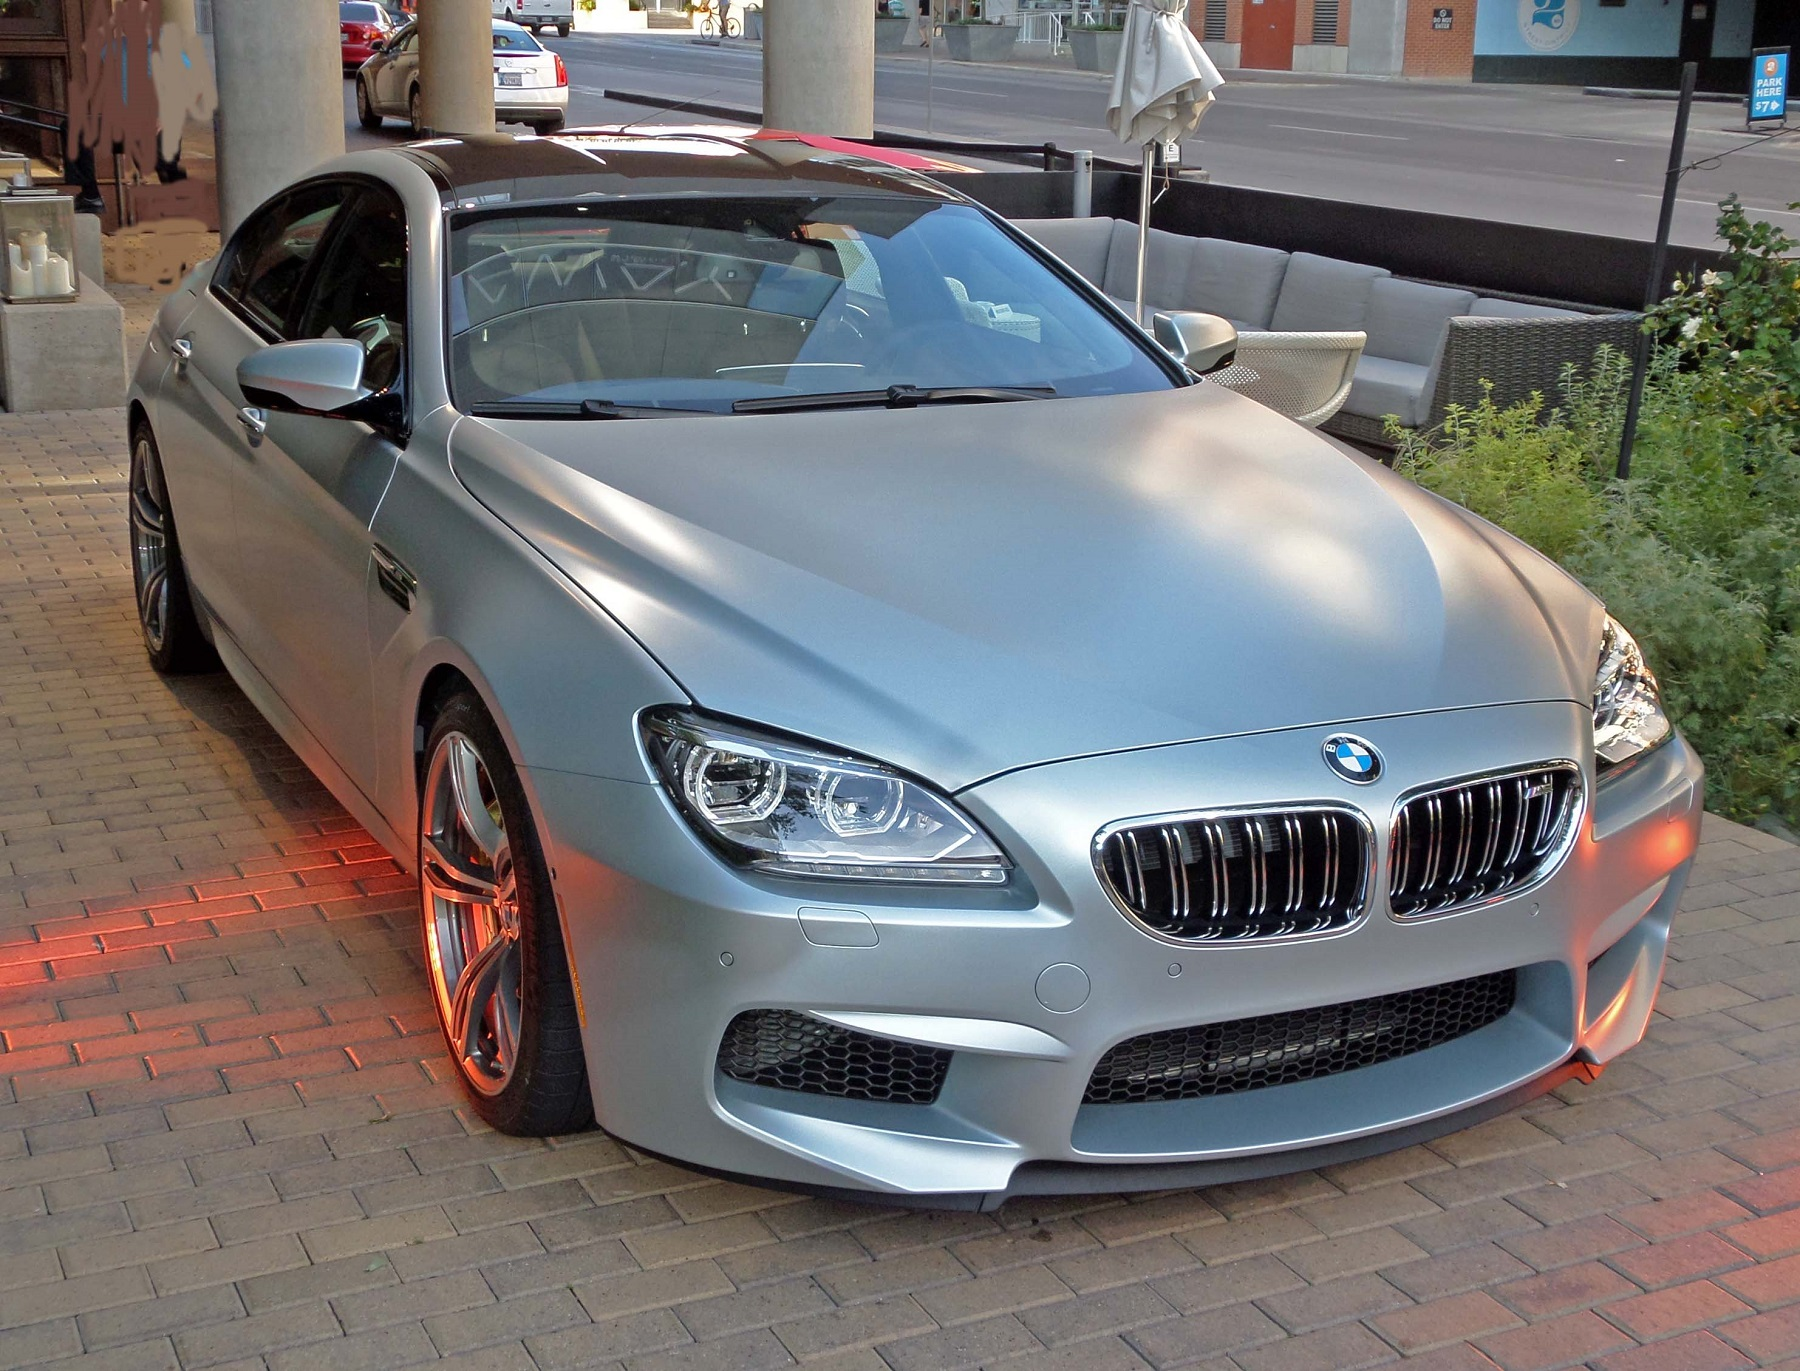 2014 bmw m6 gran coupe performance bonus wheels groovecar. Black Bedroom Furniture Sets. Home Design Ideas